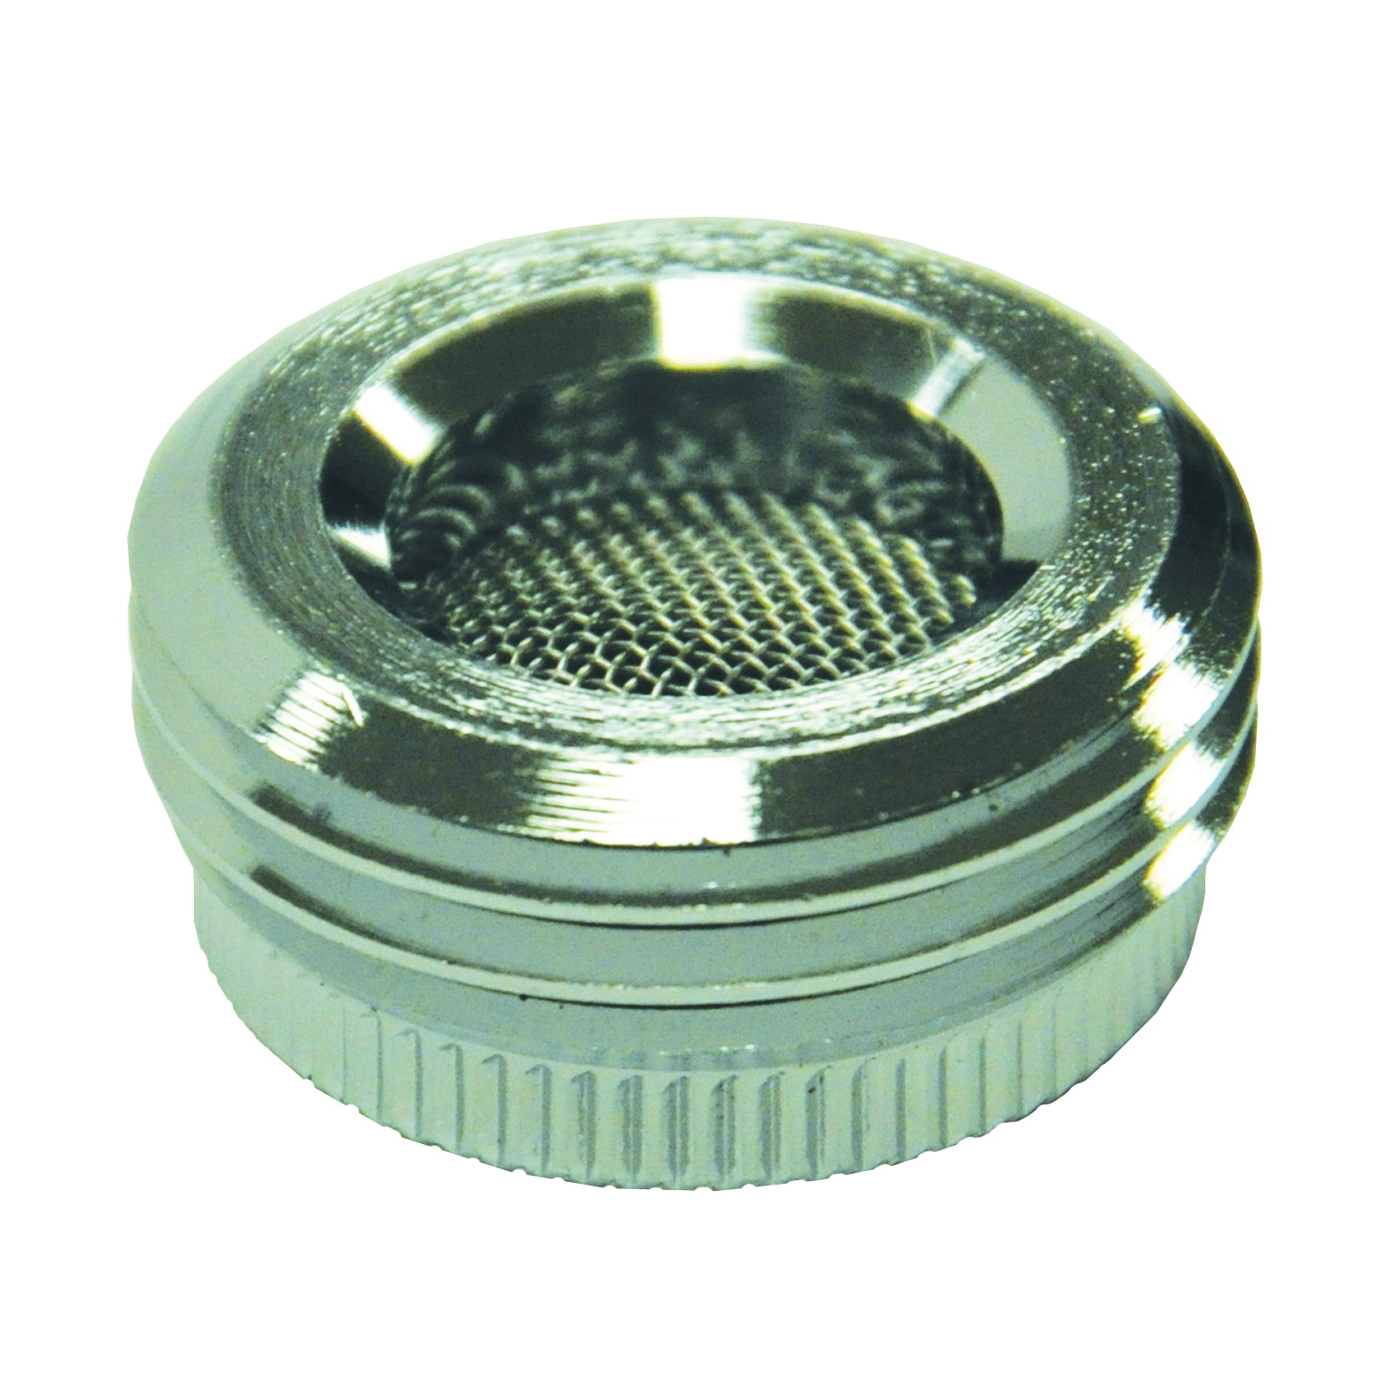 Picture of Danco 10512 Hose Adapter, 55/64-27 x 3/4 in, Female x GHTM, Brass, Chrome